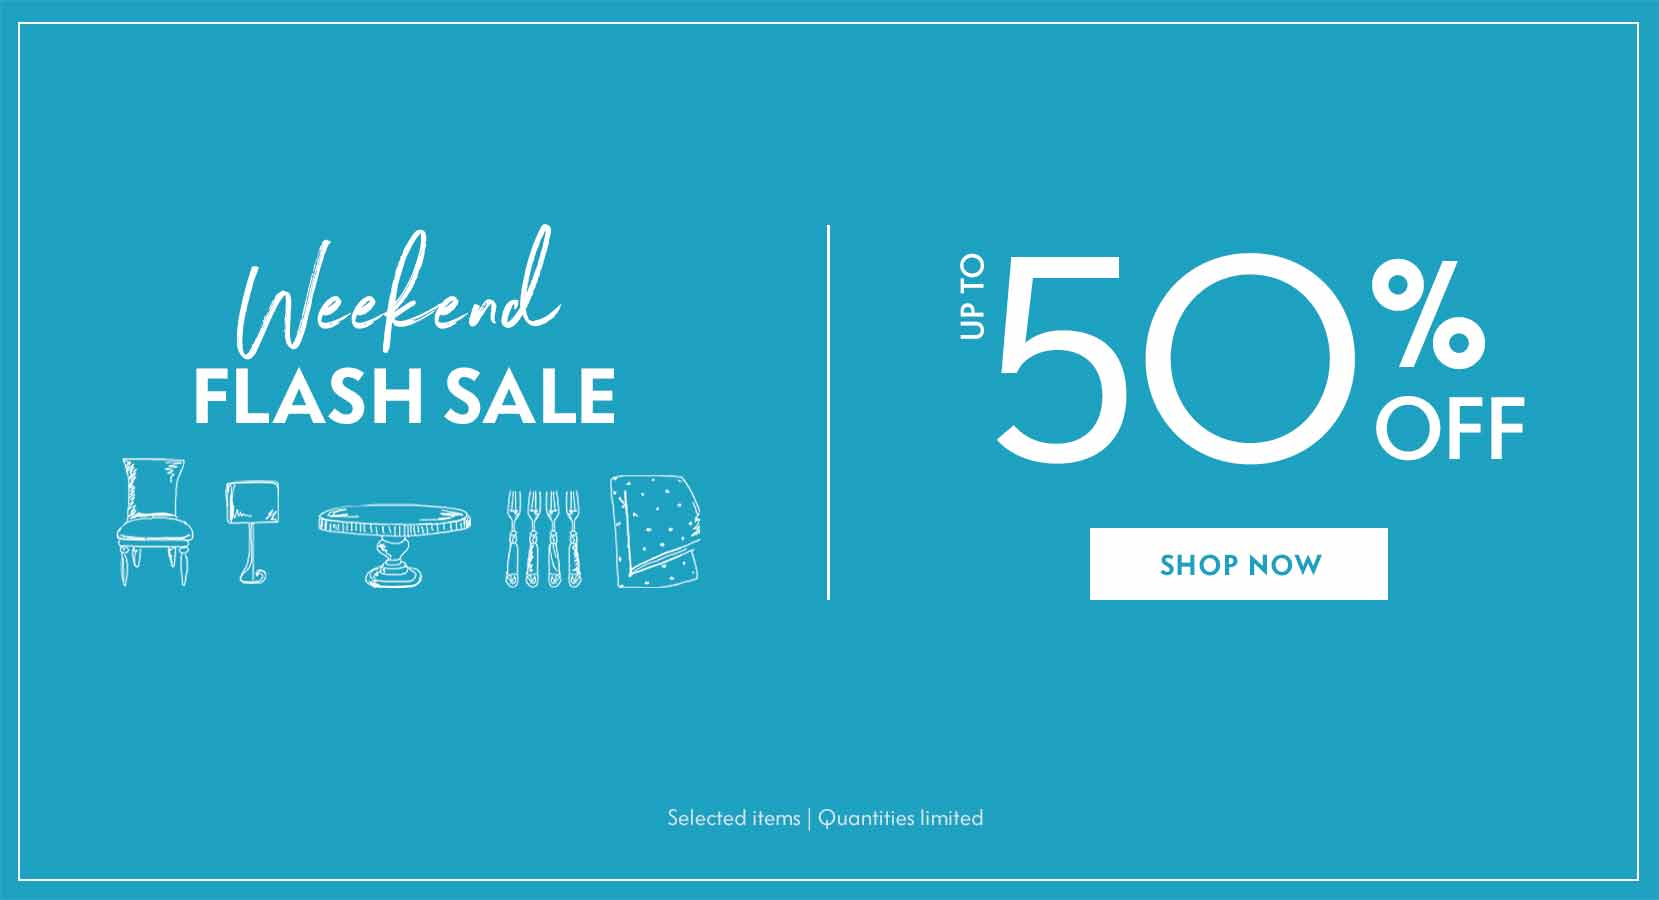 weekend flash sale selected items limited time limited quantities furniture decor bedding tabletop